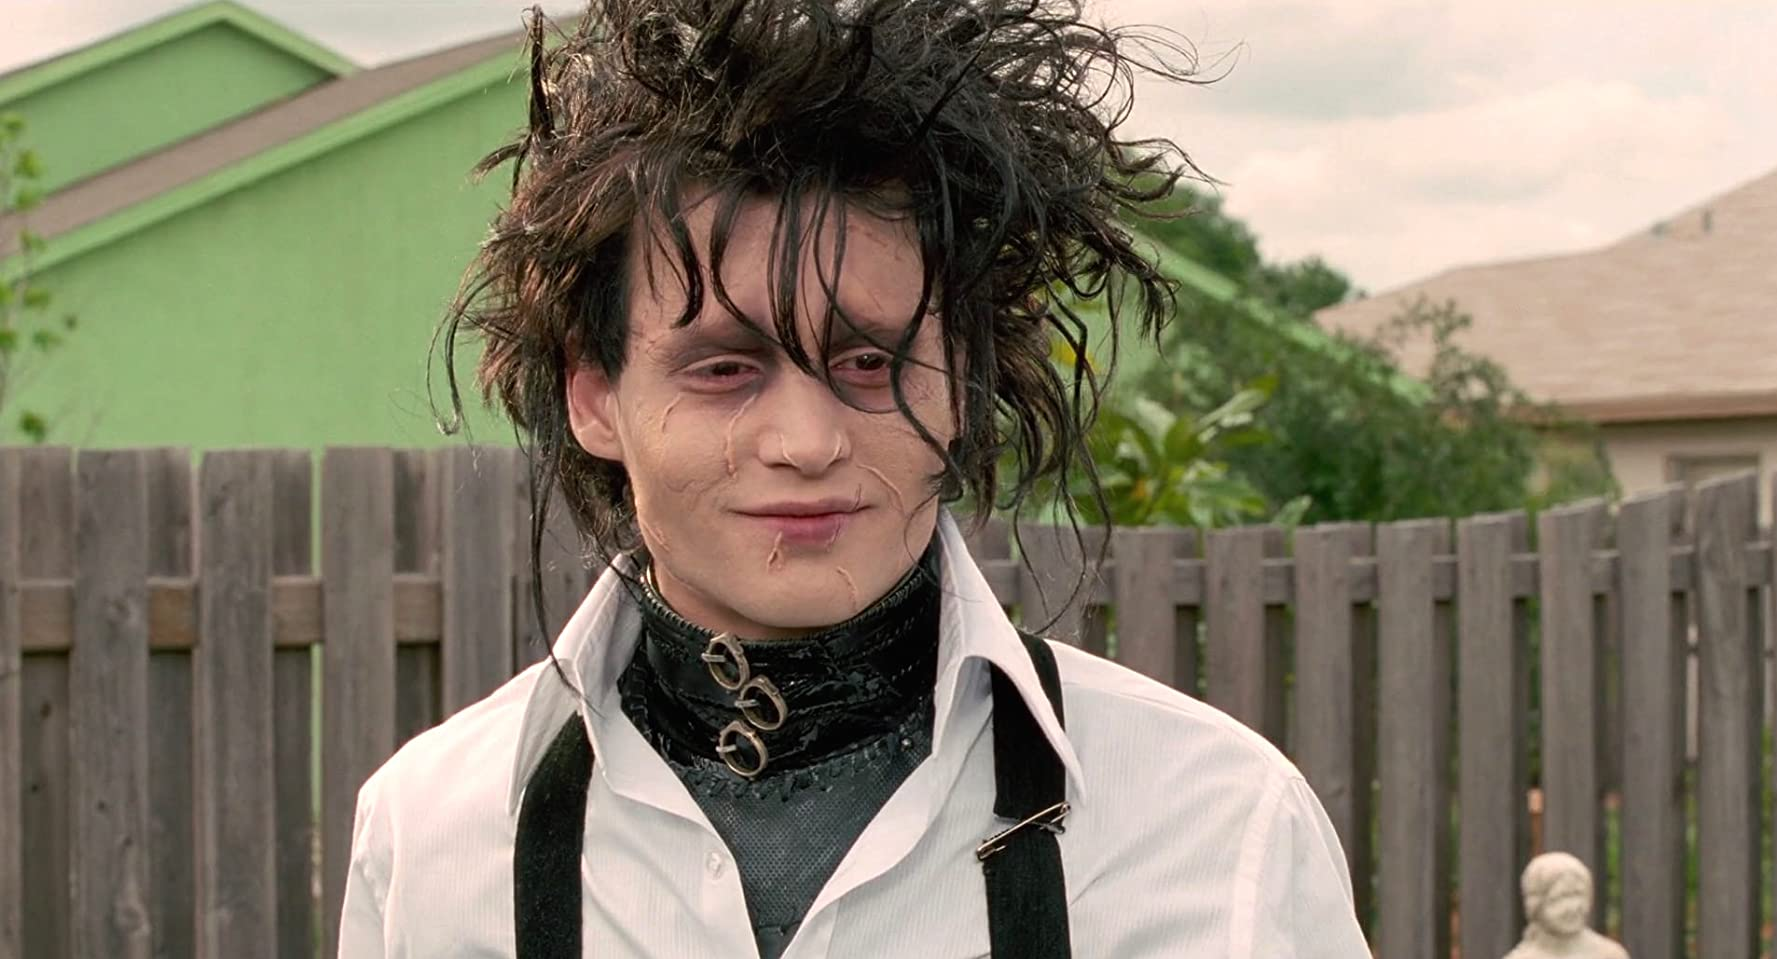 Johnny Depp in Edward Scissorhands 1990